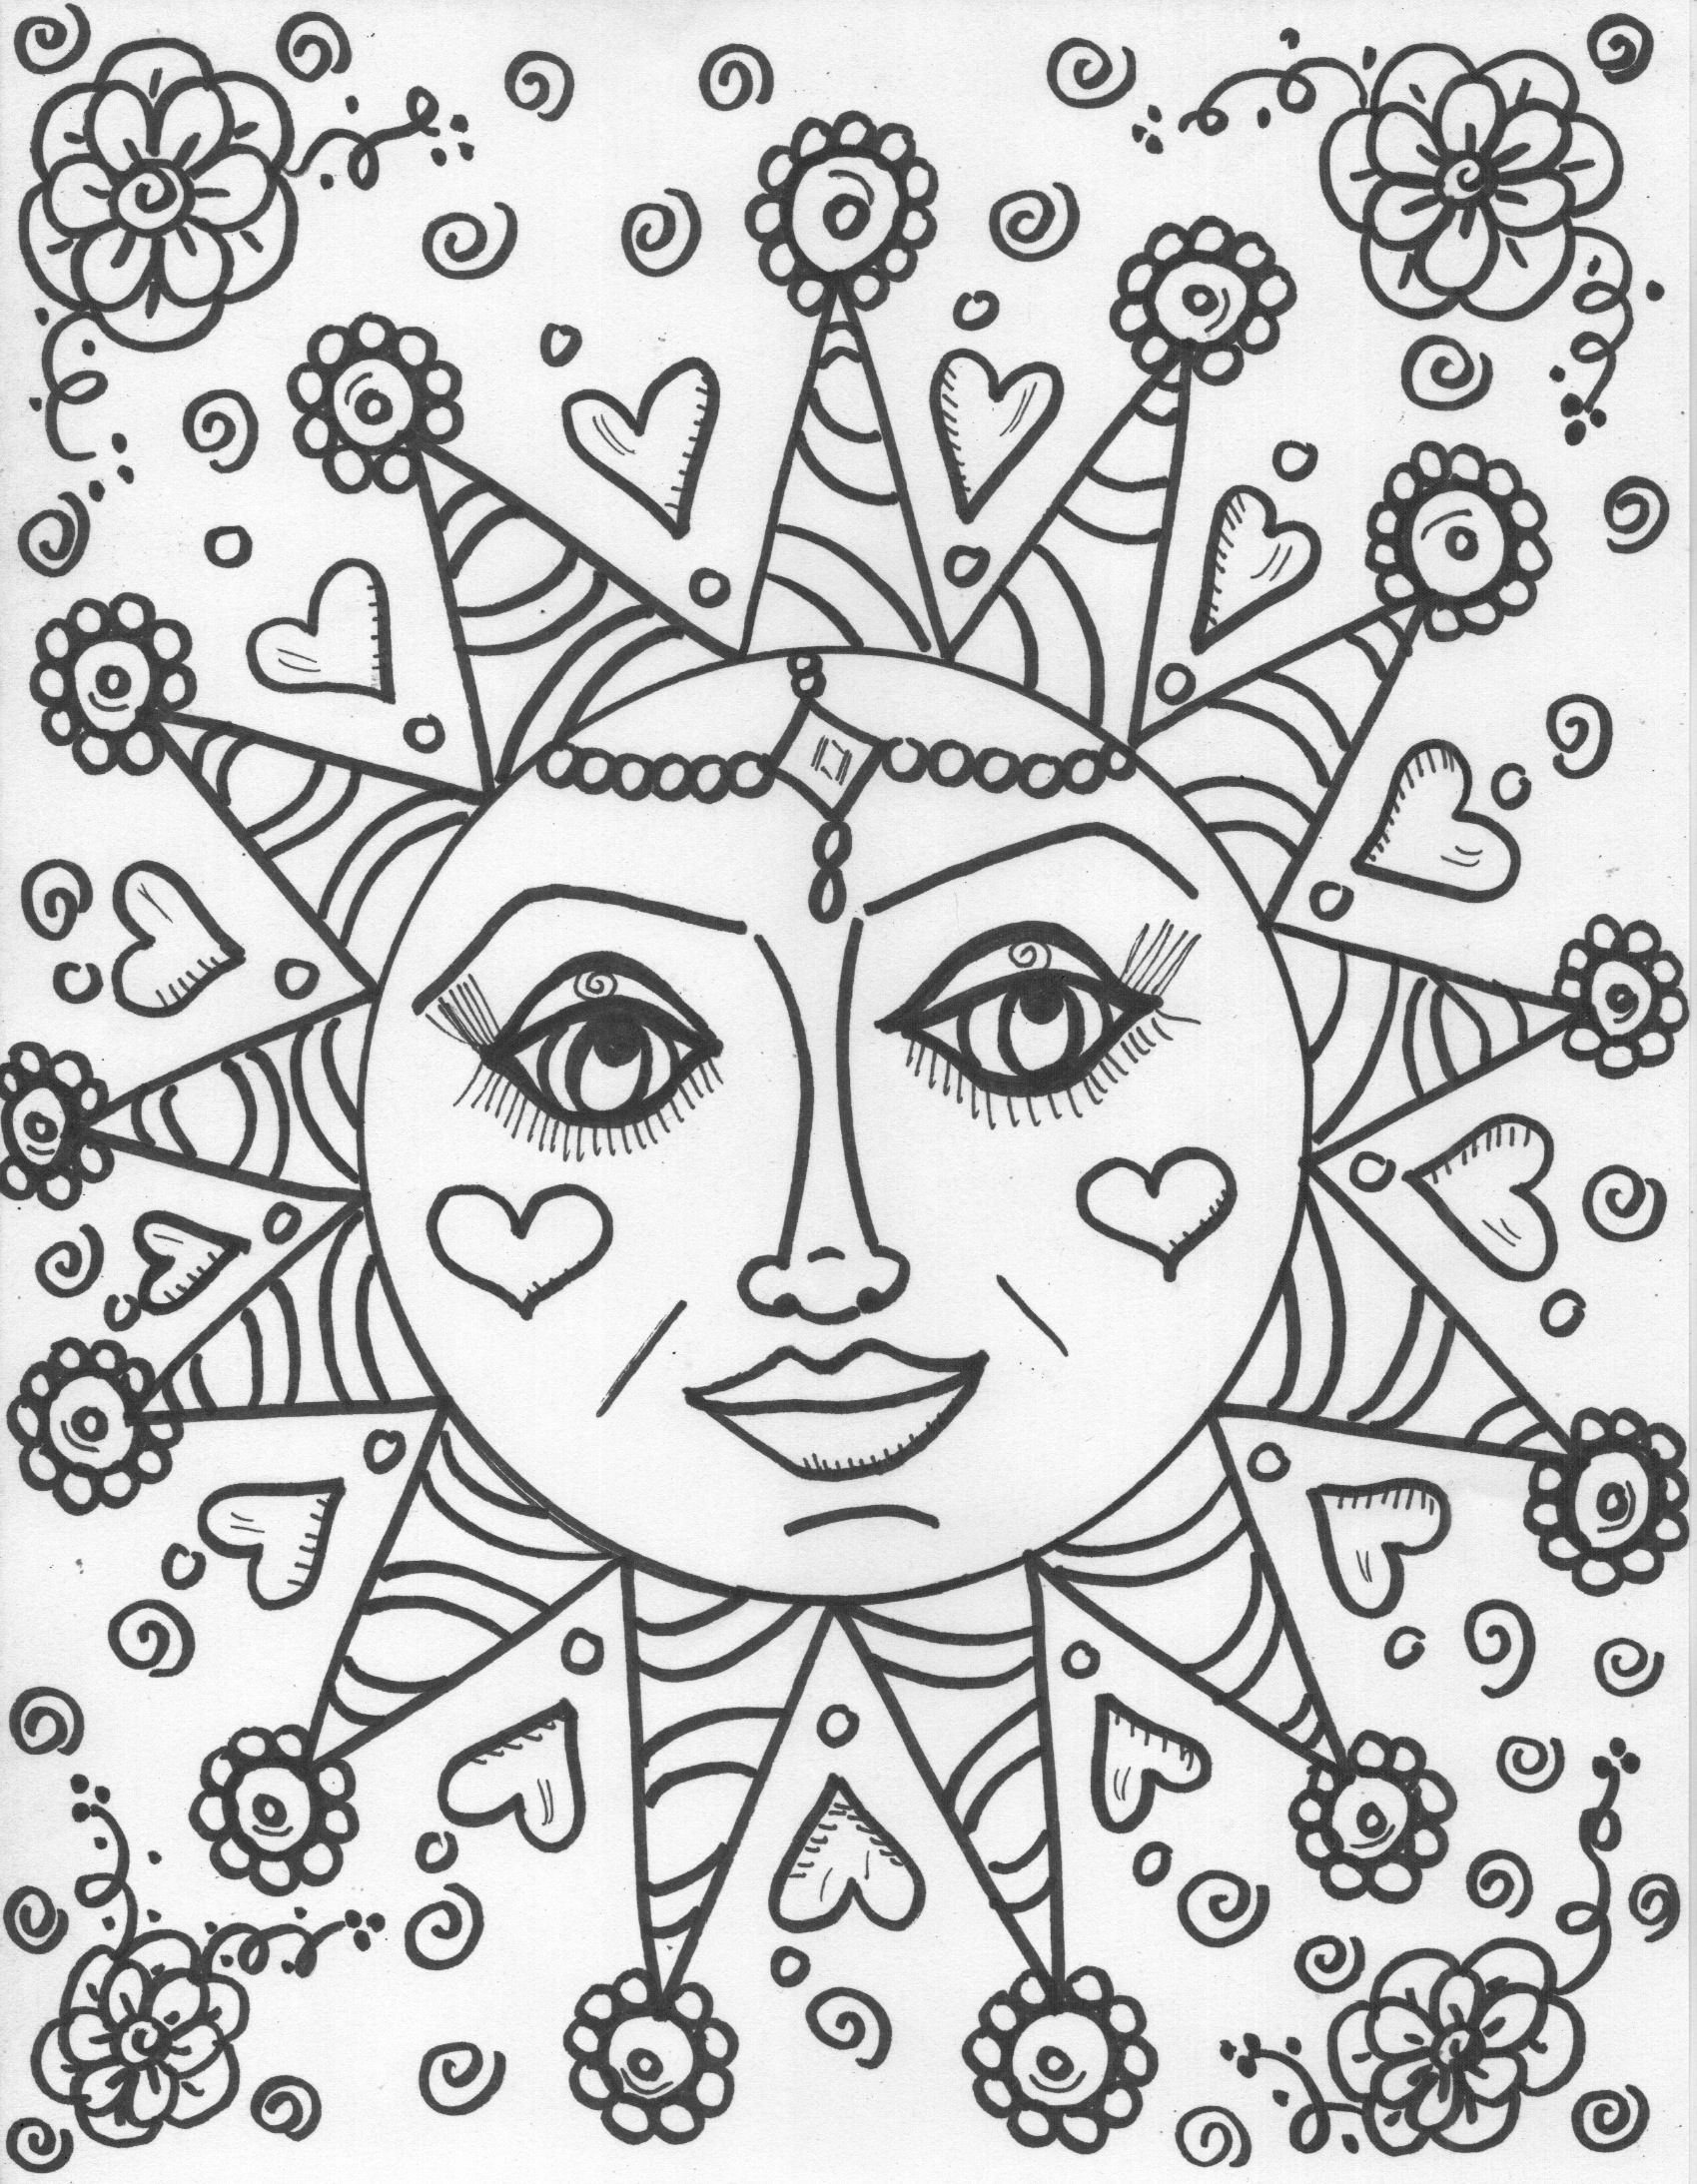 coloring book pagesdesign your own coloring book - Coloring Pg